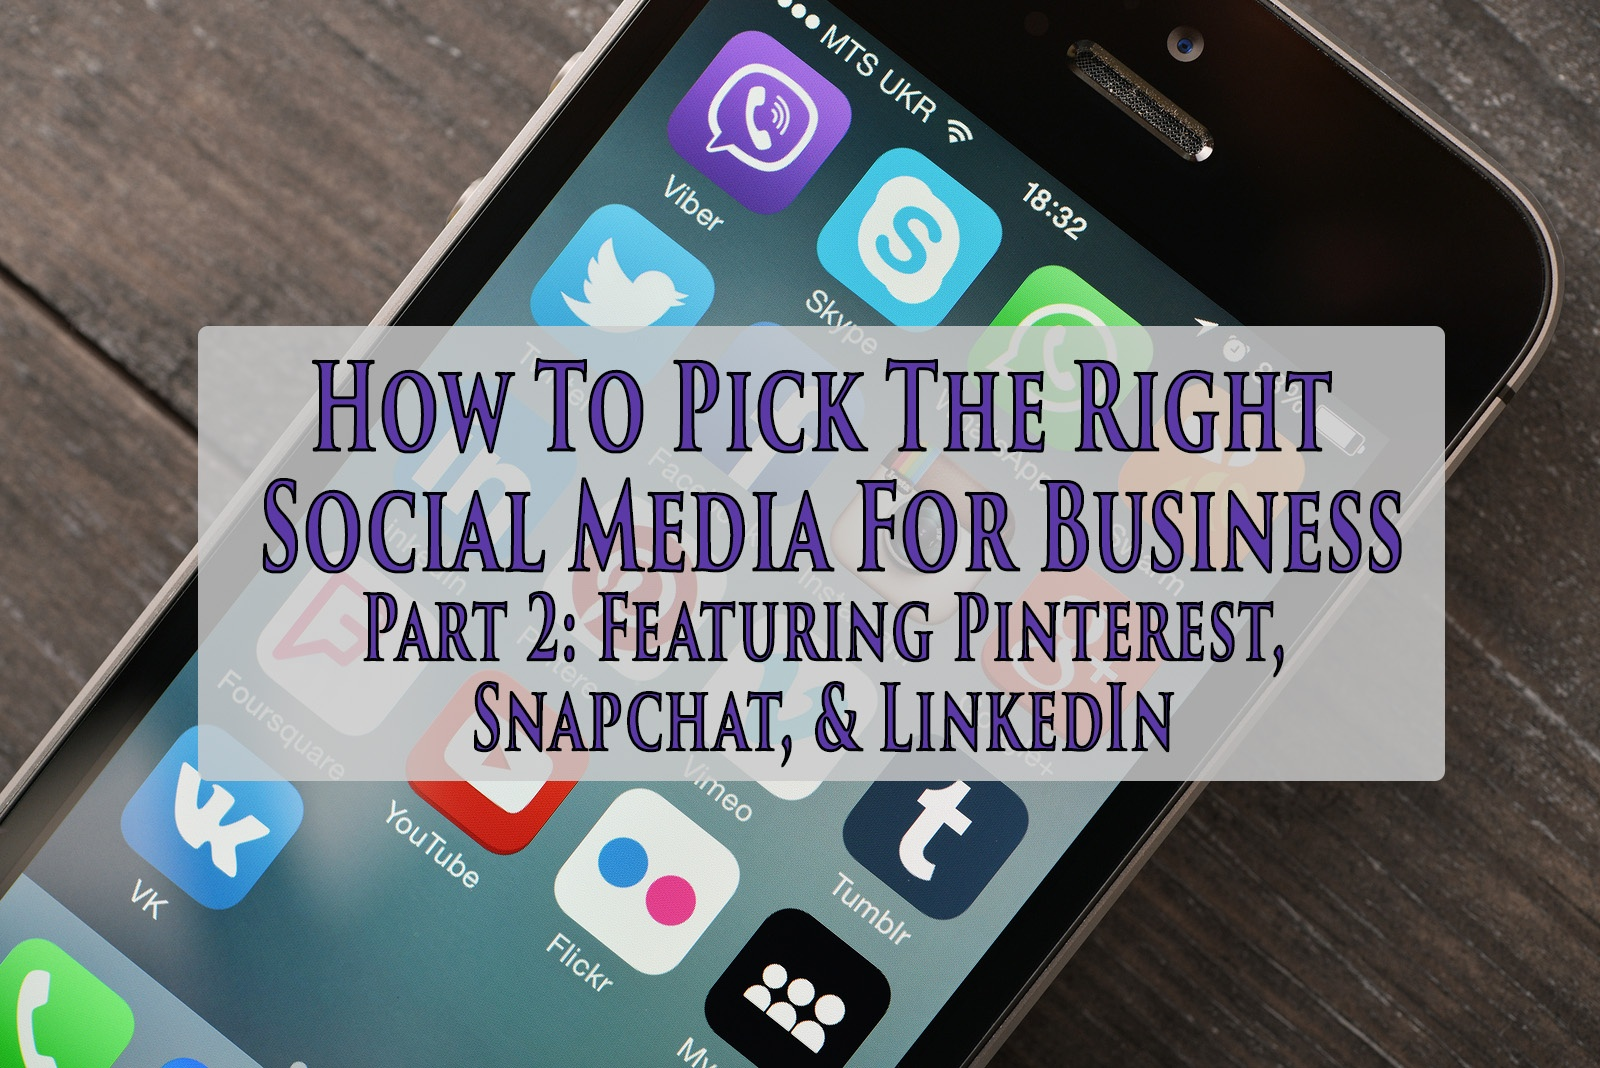 how-to-pick-the-right-social-media-for-business-part-2.jpg